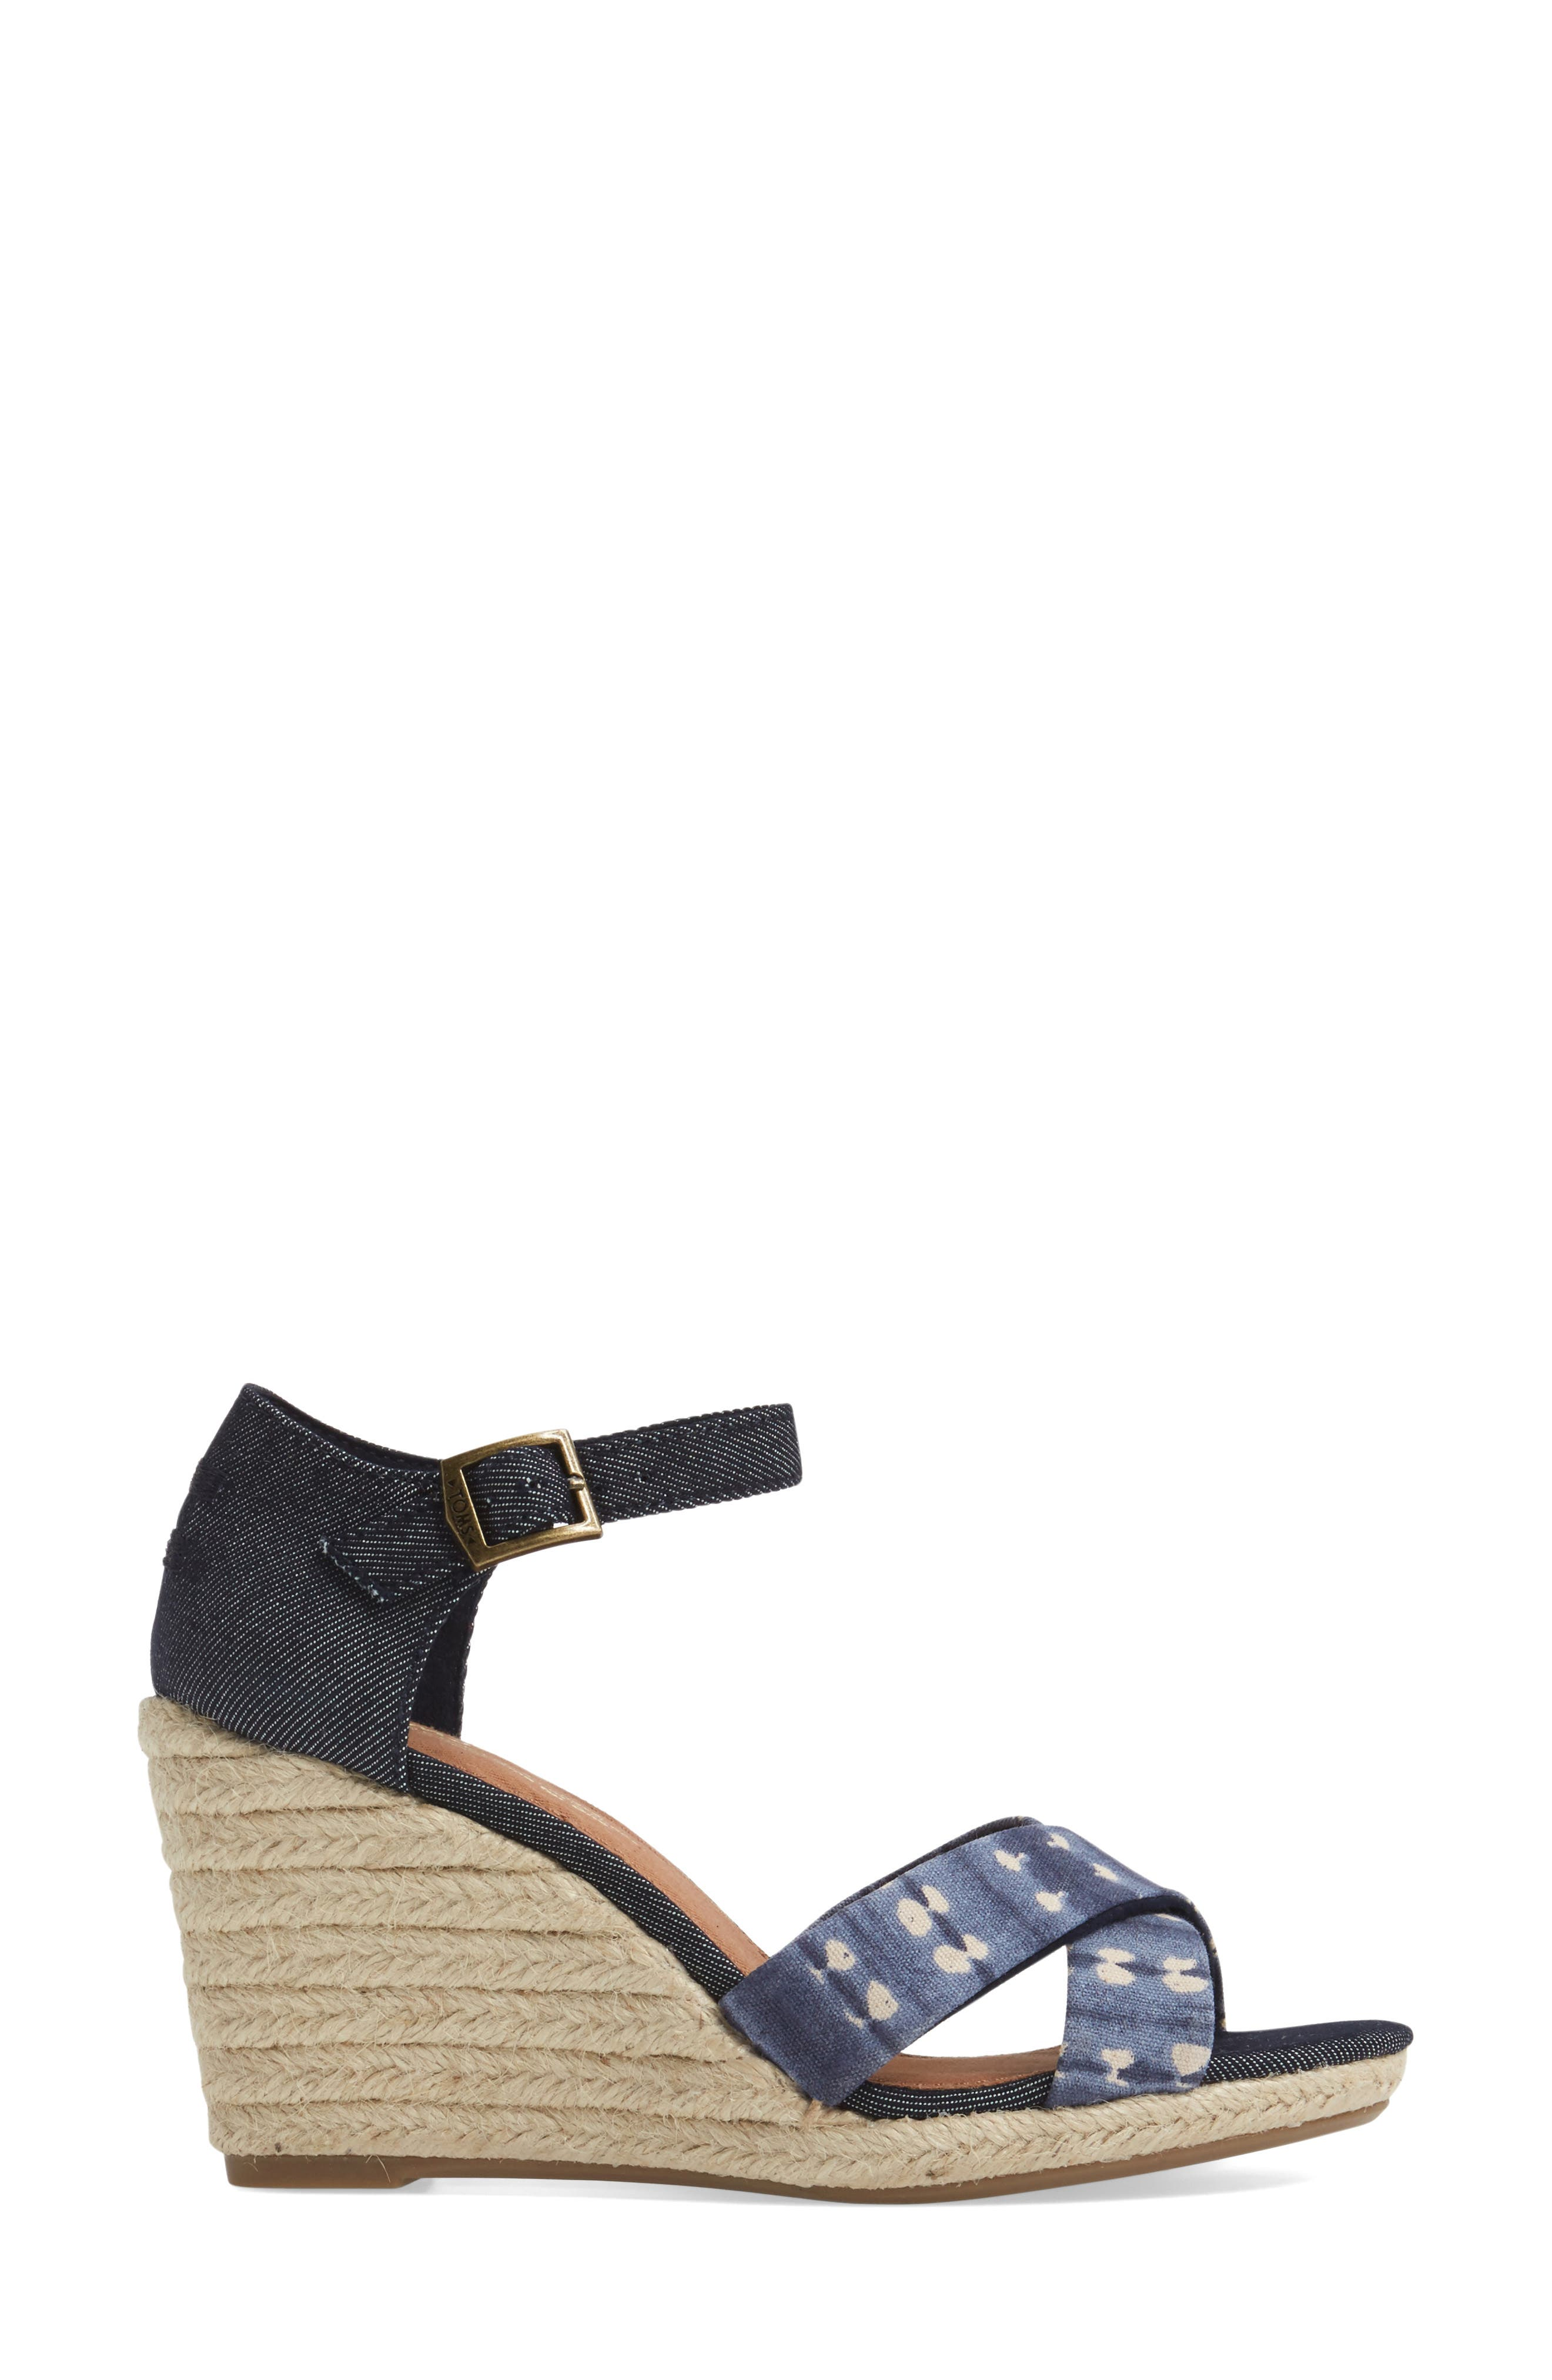 Alternate Image 3  - TOMS Sienna Wedge Sandal (Women)